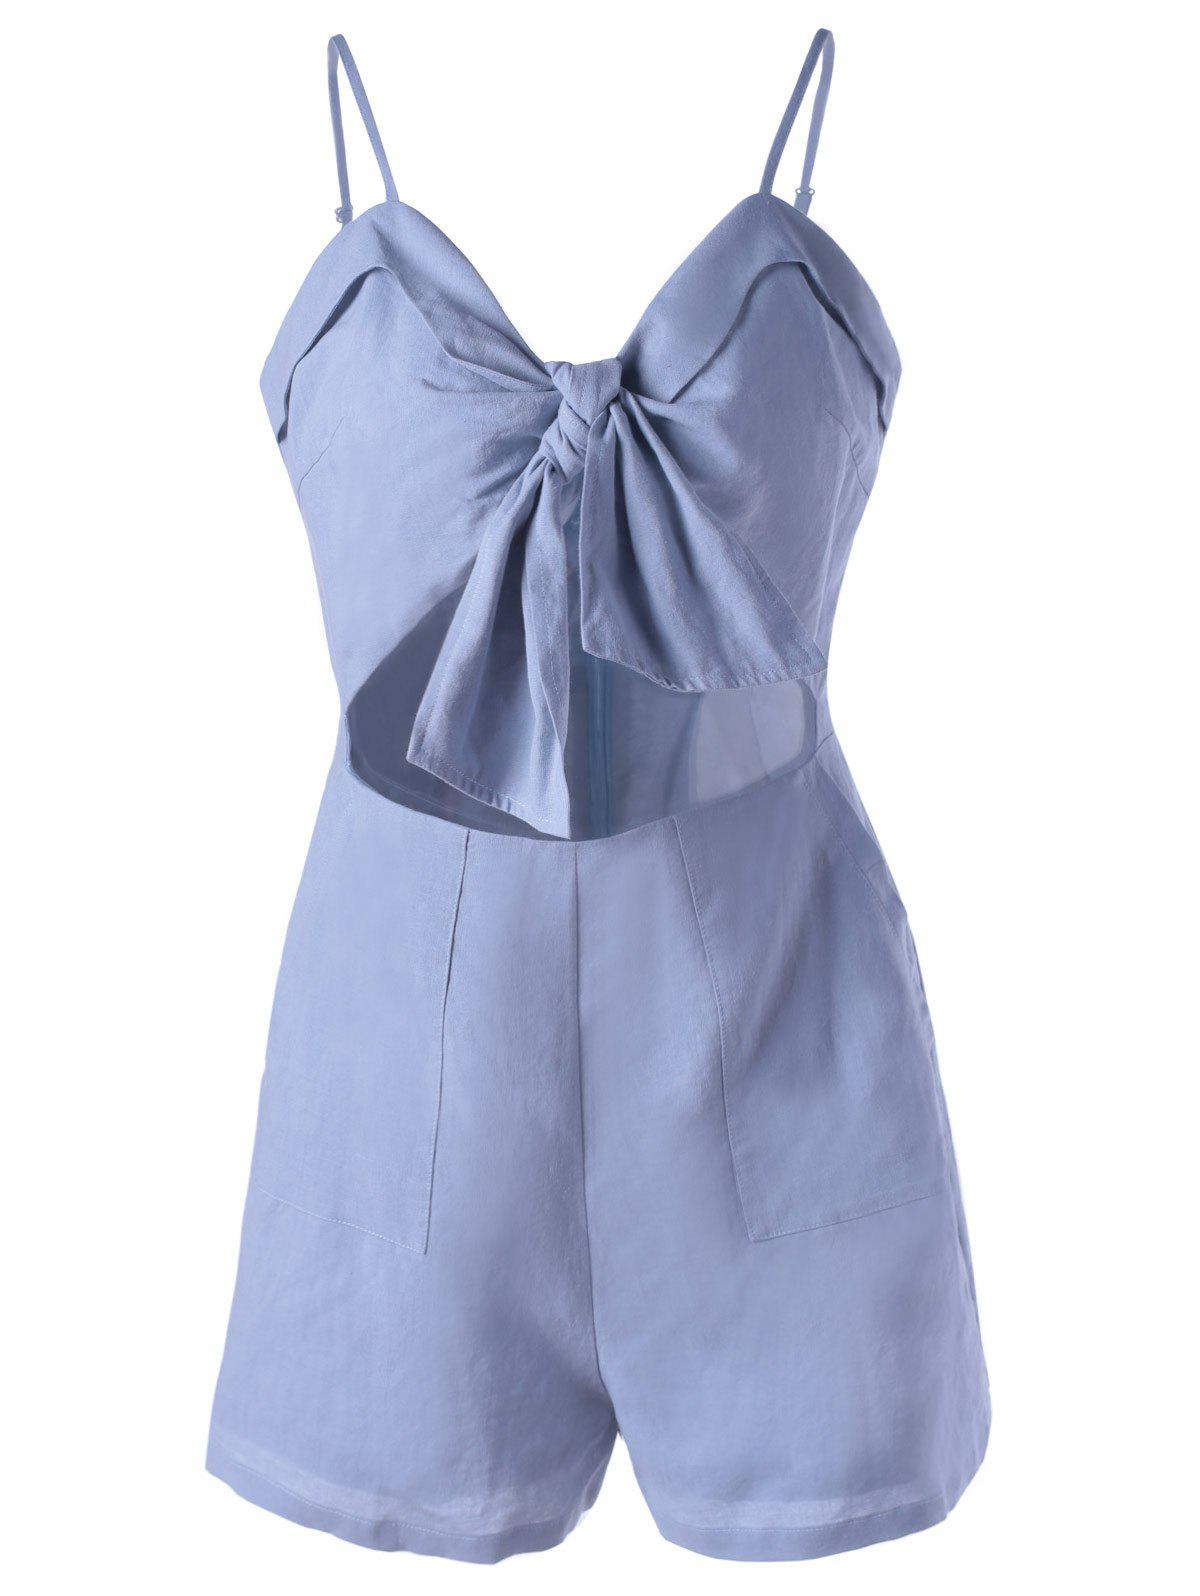 Fashionable Cut-Out Spaghetti Strap Romper For WomenWomen<br><br><br>Size: M<br>Color: LIGHT BLUE